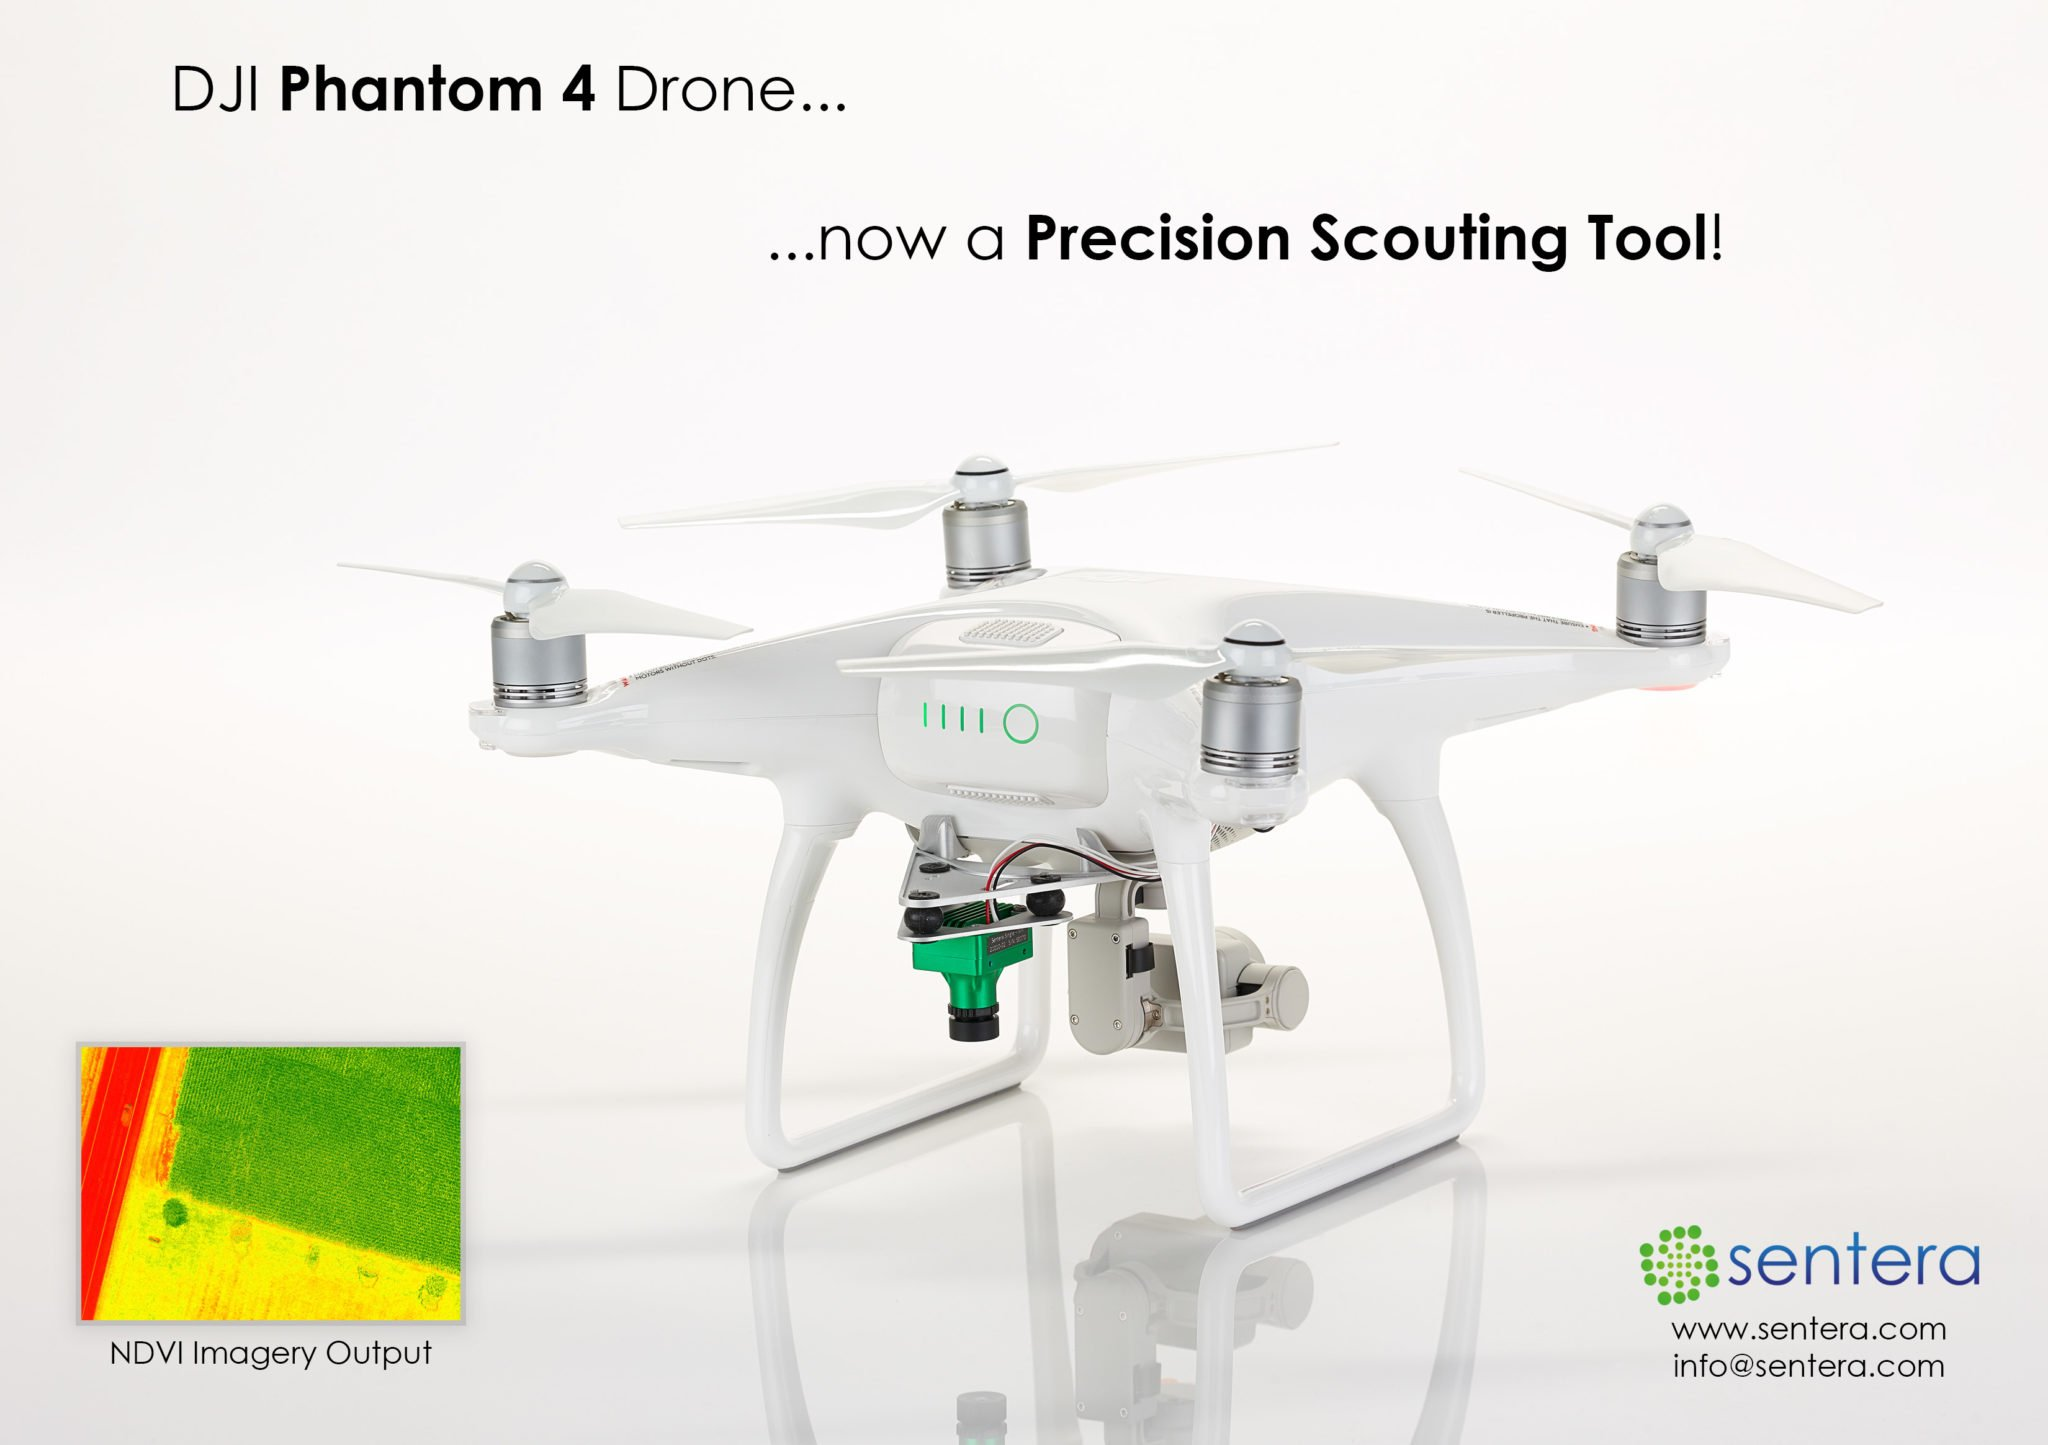 precision drone llc with Sentera Brings Precision Scouting Capabilities Dji Phantom 4 Drone on Agrasmg 1 besides Micro Motion Drive Gain Definition in addition Global Drone Uav Market Demand Opportunity Analysis 2023 additionally Agribotix Tm Brings Portable Affordable Drone And Analytics Solution Built On Dji Tm Phantom Tm To Agriculture moreover Agribotix Latin America Employs Drone Enabled Ag Intelligence To Help Panamanian Farmers.